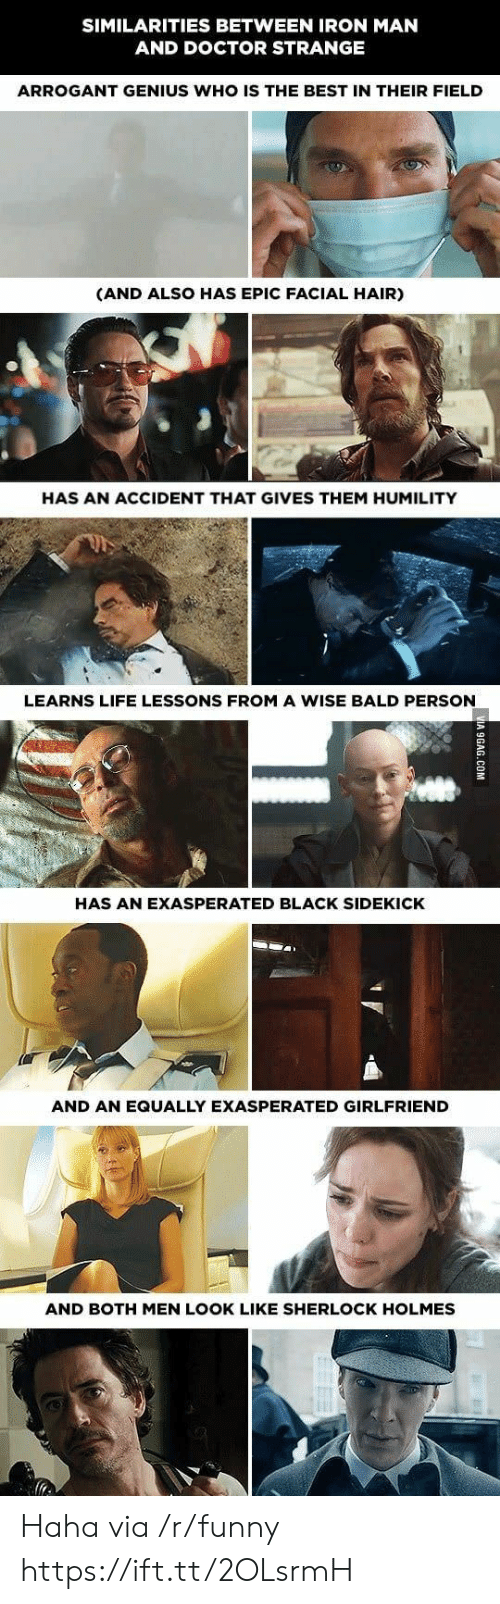 doctor strange: SIMILARITIES BETWEEN IRON MAN  AND DOCTOR STRANGE  ARROGANT GENIUS WHO IS THE BEST IN THEIR FIELD  (AND ALSO HAS EPIC FACIAL HAIR)  HAS AN ACCIDENT THAT GIVES THEM HUMILITY  LEARNS LIFE LESSONS FROM A WISE BALD PERSON  HAS AN EXASPERATED BLACK SIDEKICK  AND AN EQUALLY EXASPERATED GIRLFRIEND  AND BOTH MEN LOOK LIKE SHERLOCK HOLMES Haha via /r/funny https://ift.tt/2OLsrmH